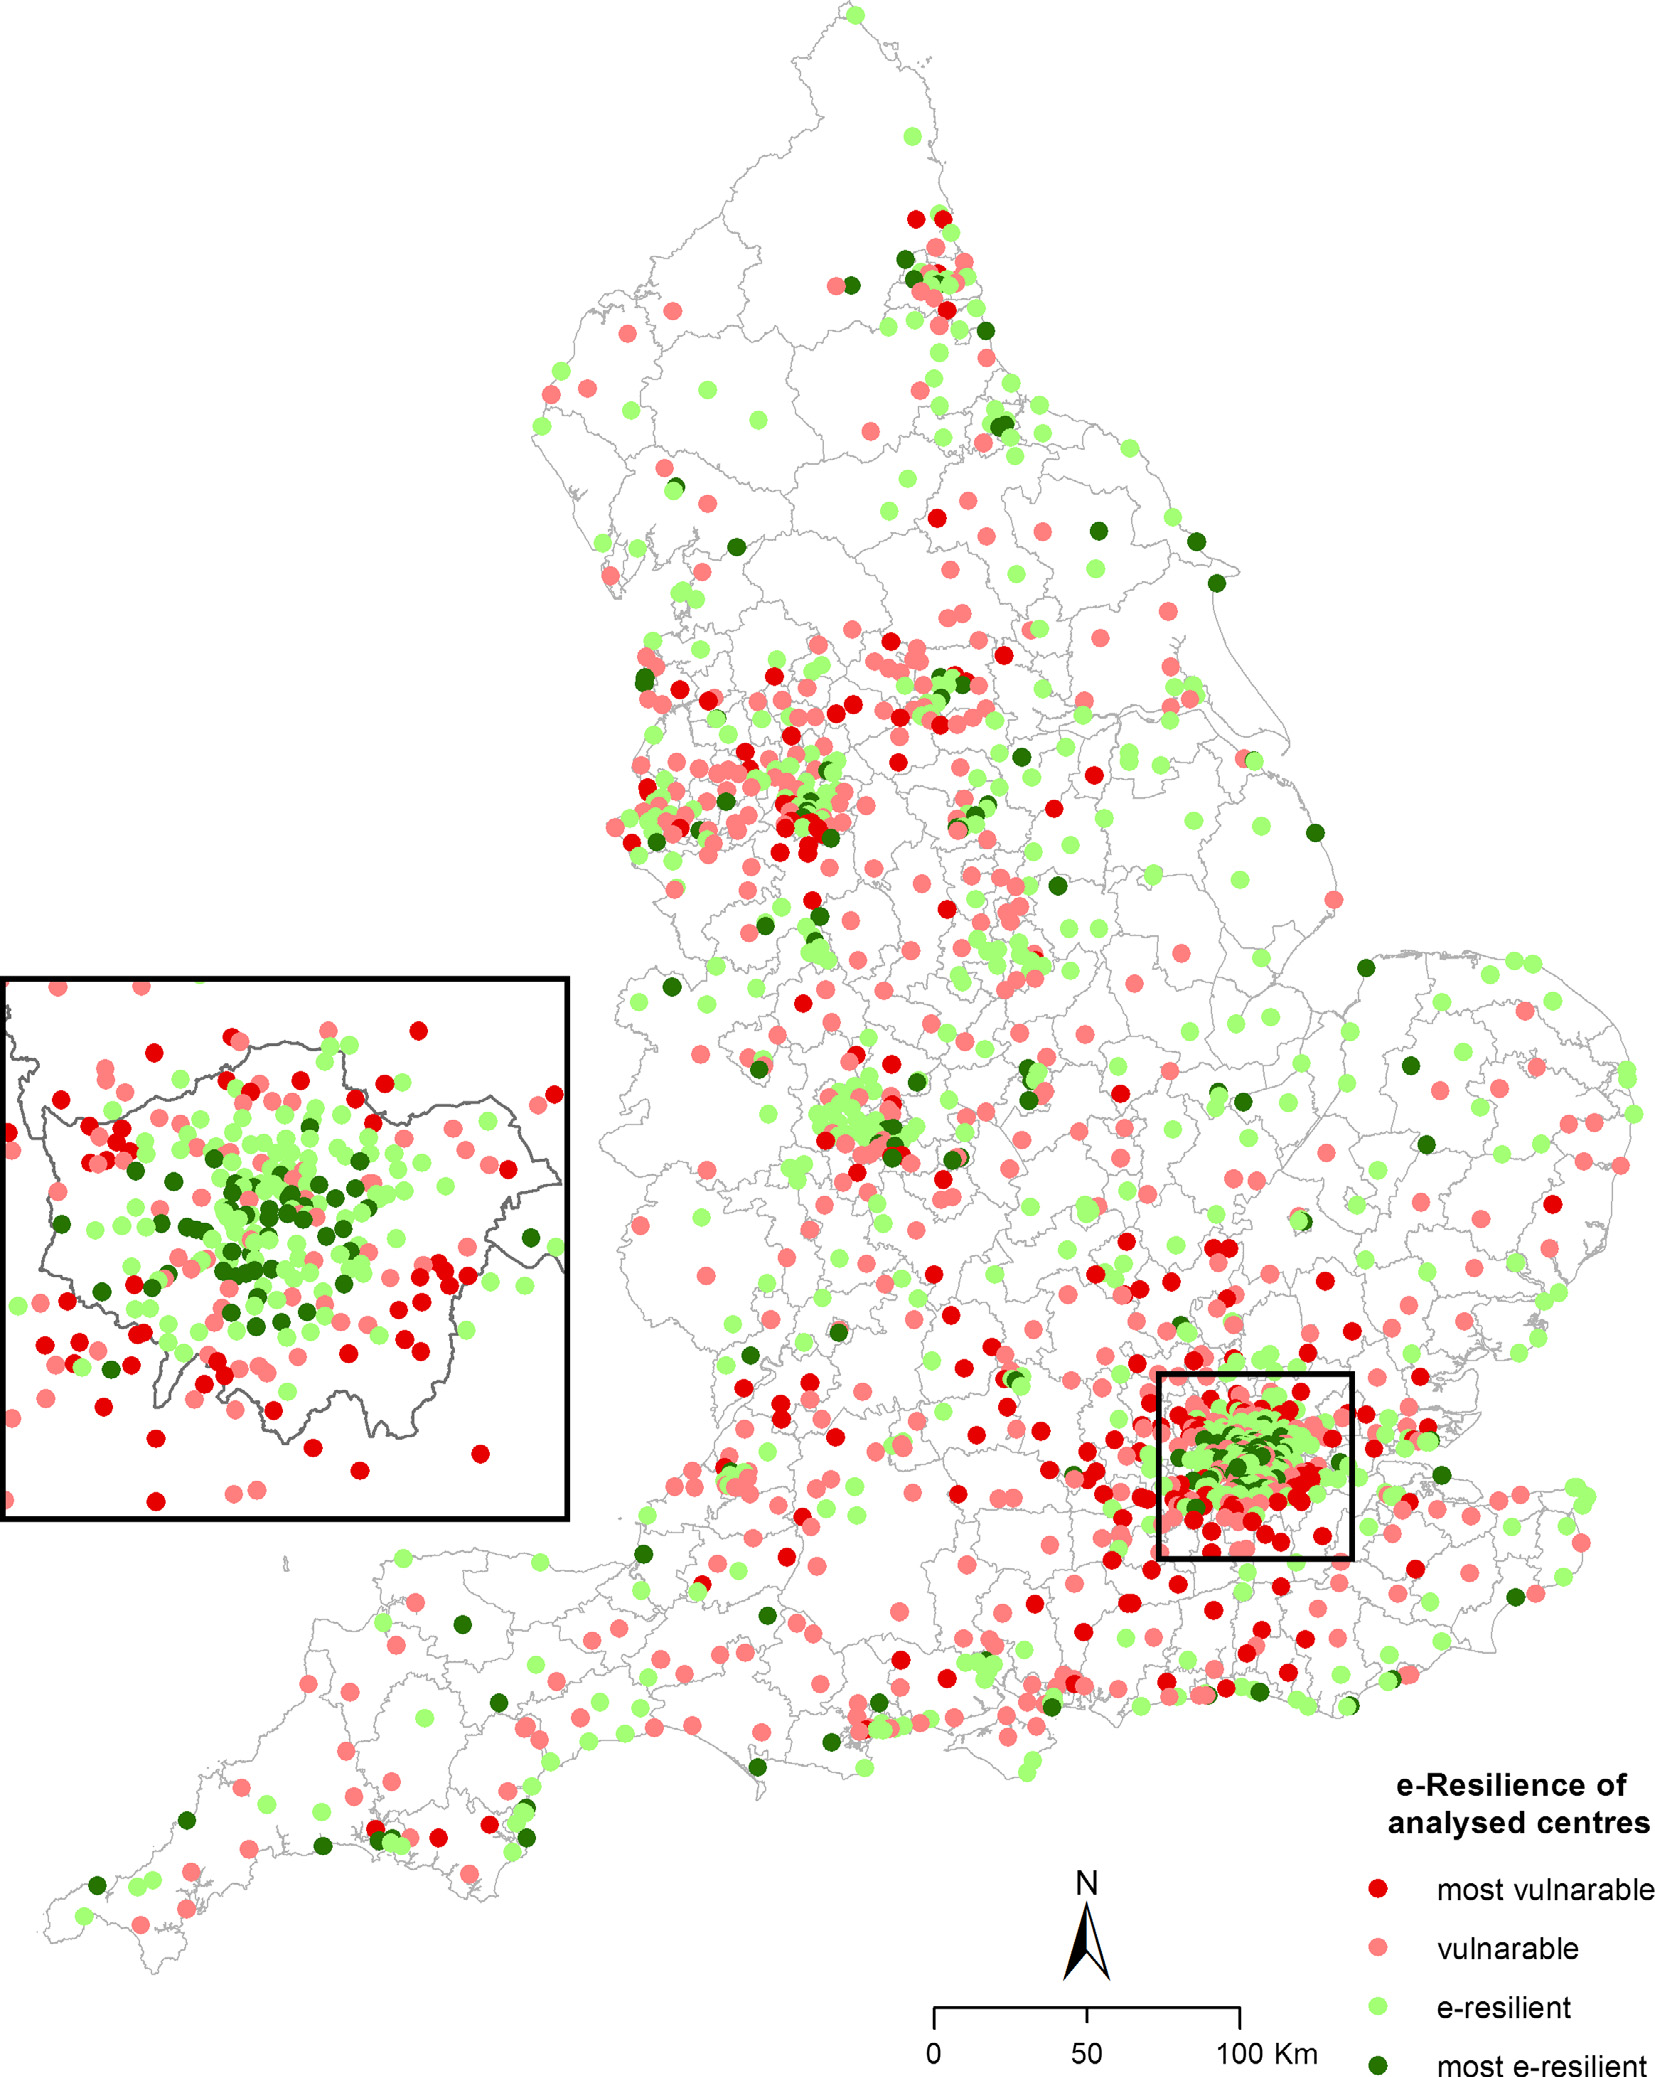 The e-resilience of town centres in England